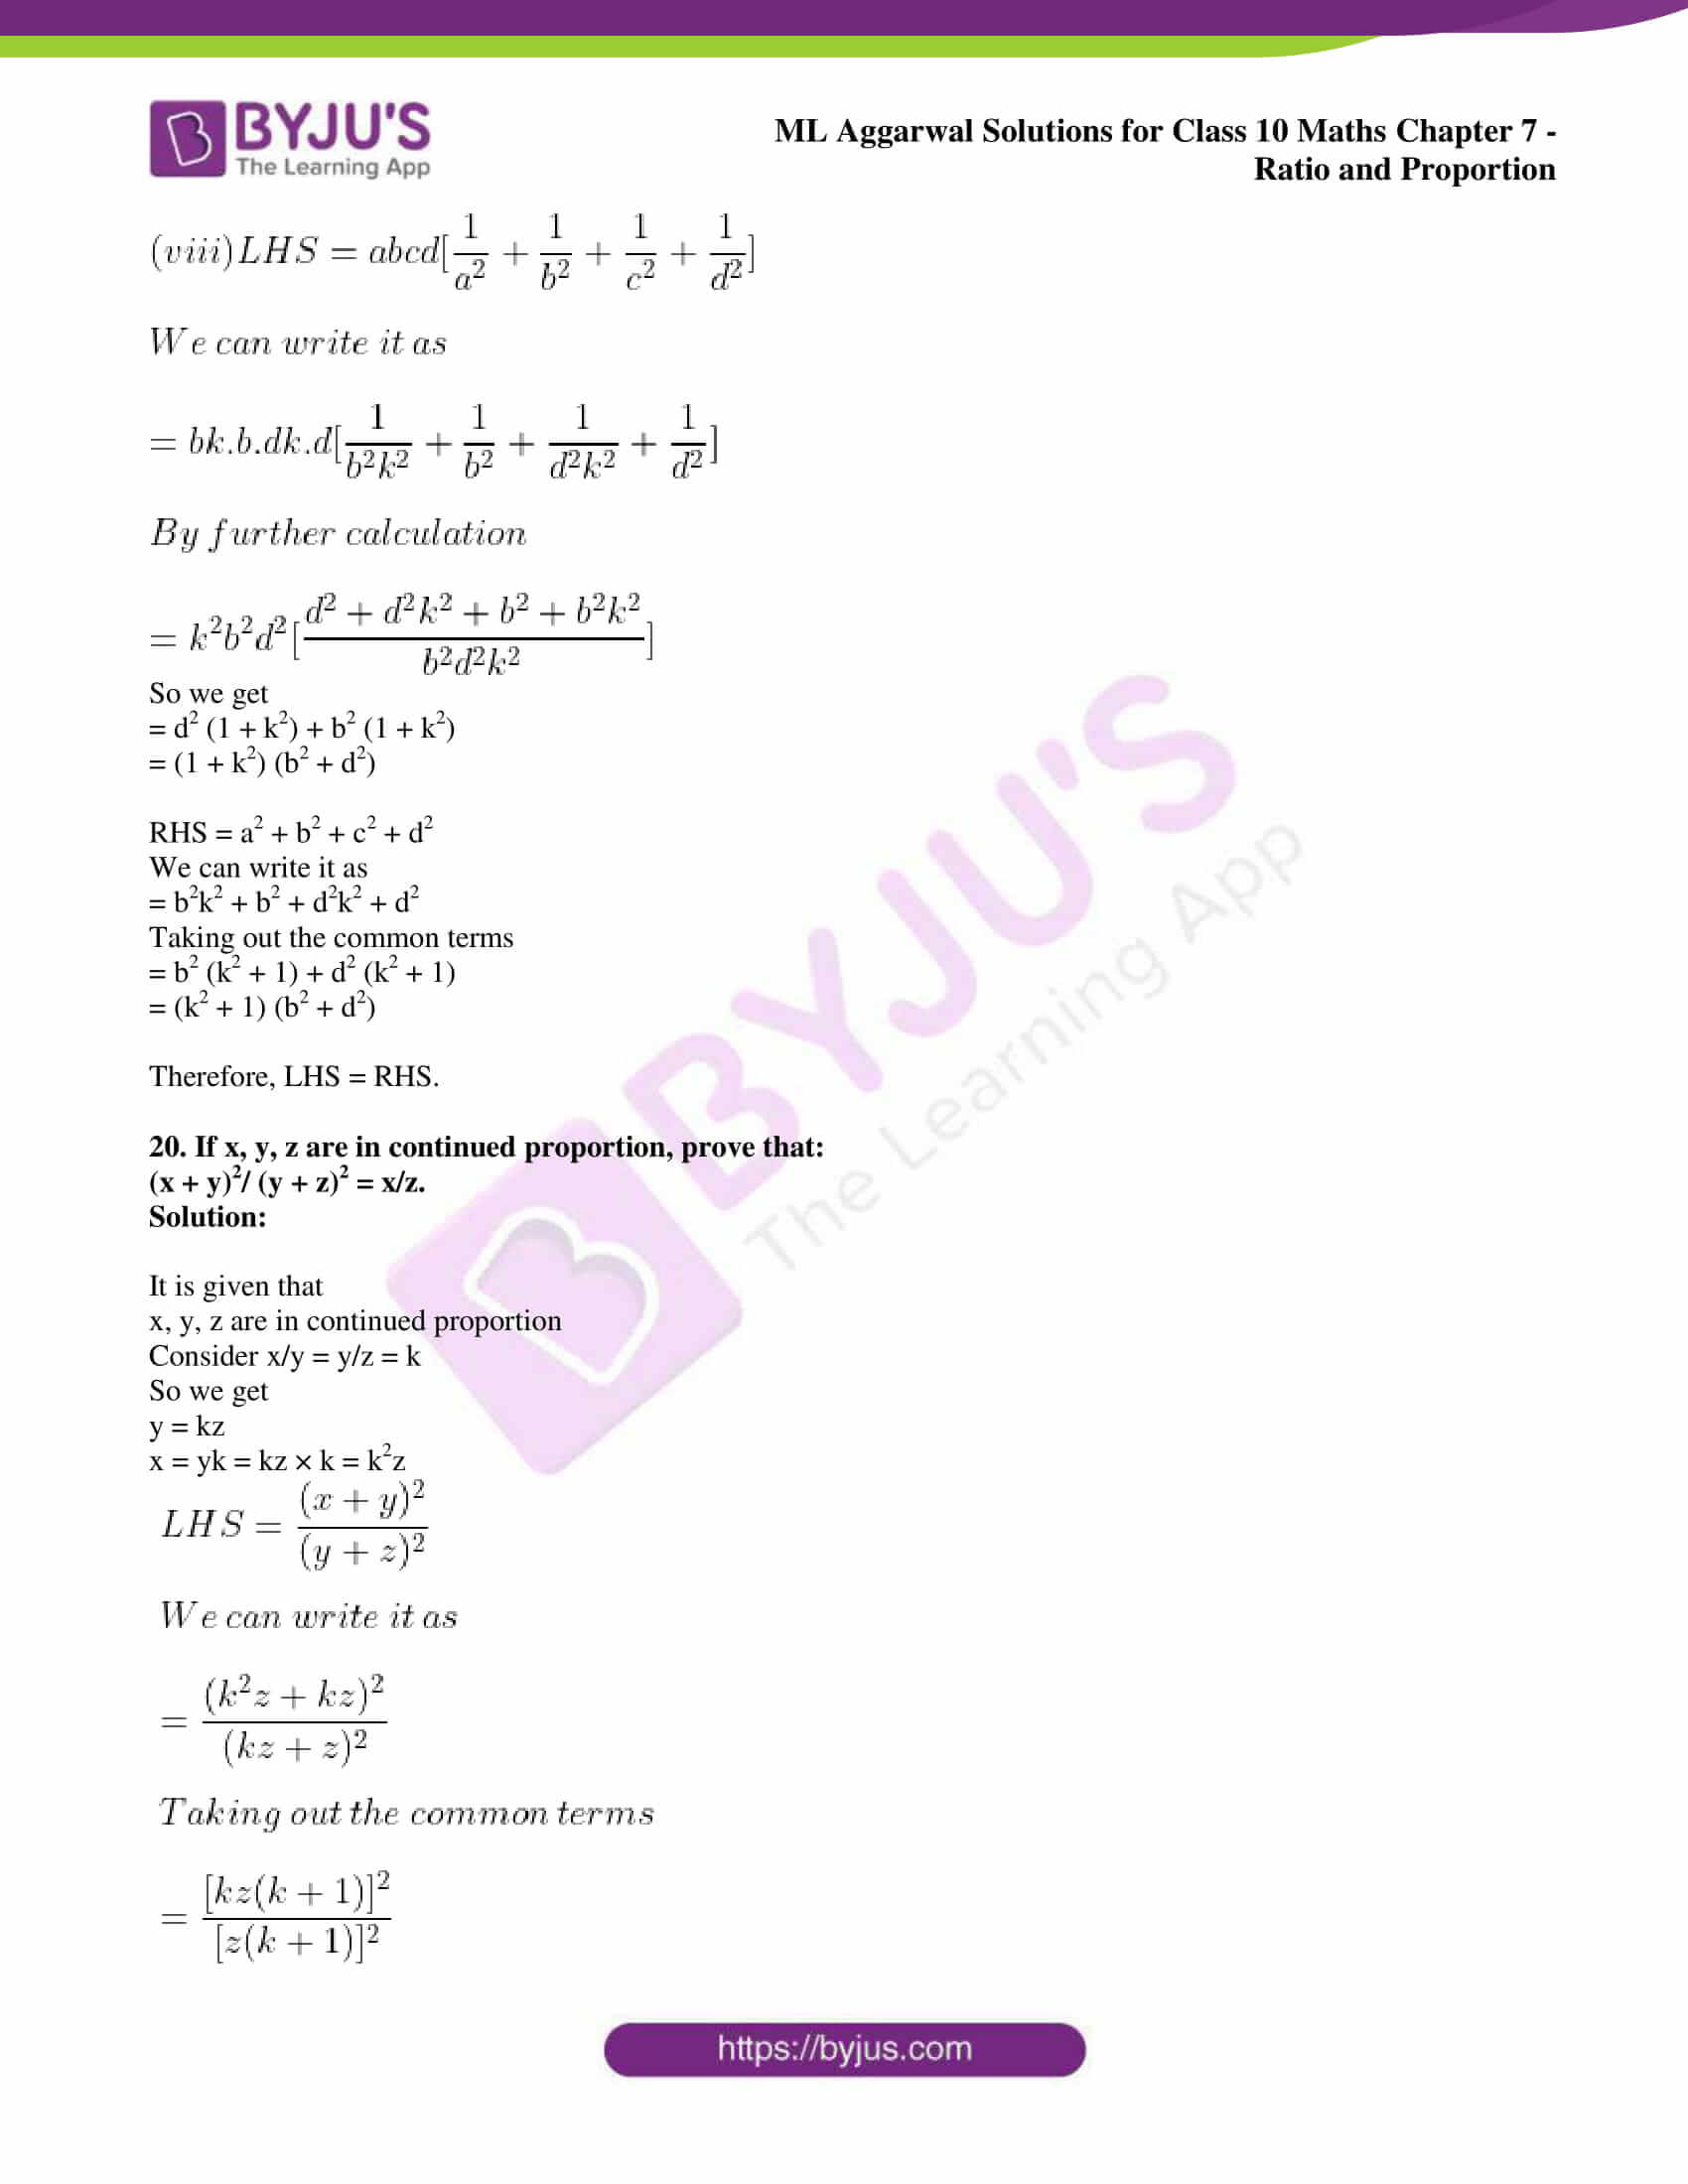 ml aggarwal solutions for class 10 maths chapter 7 34